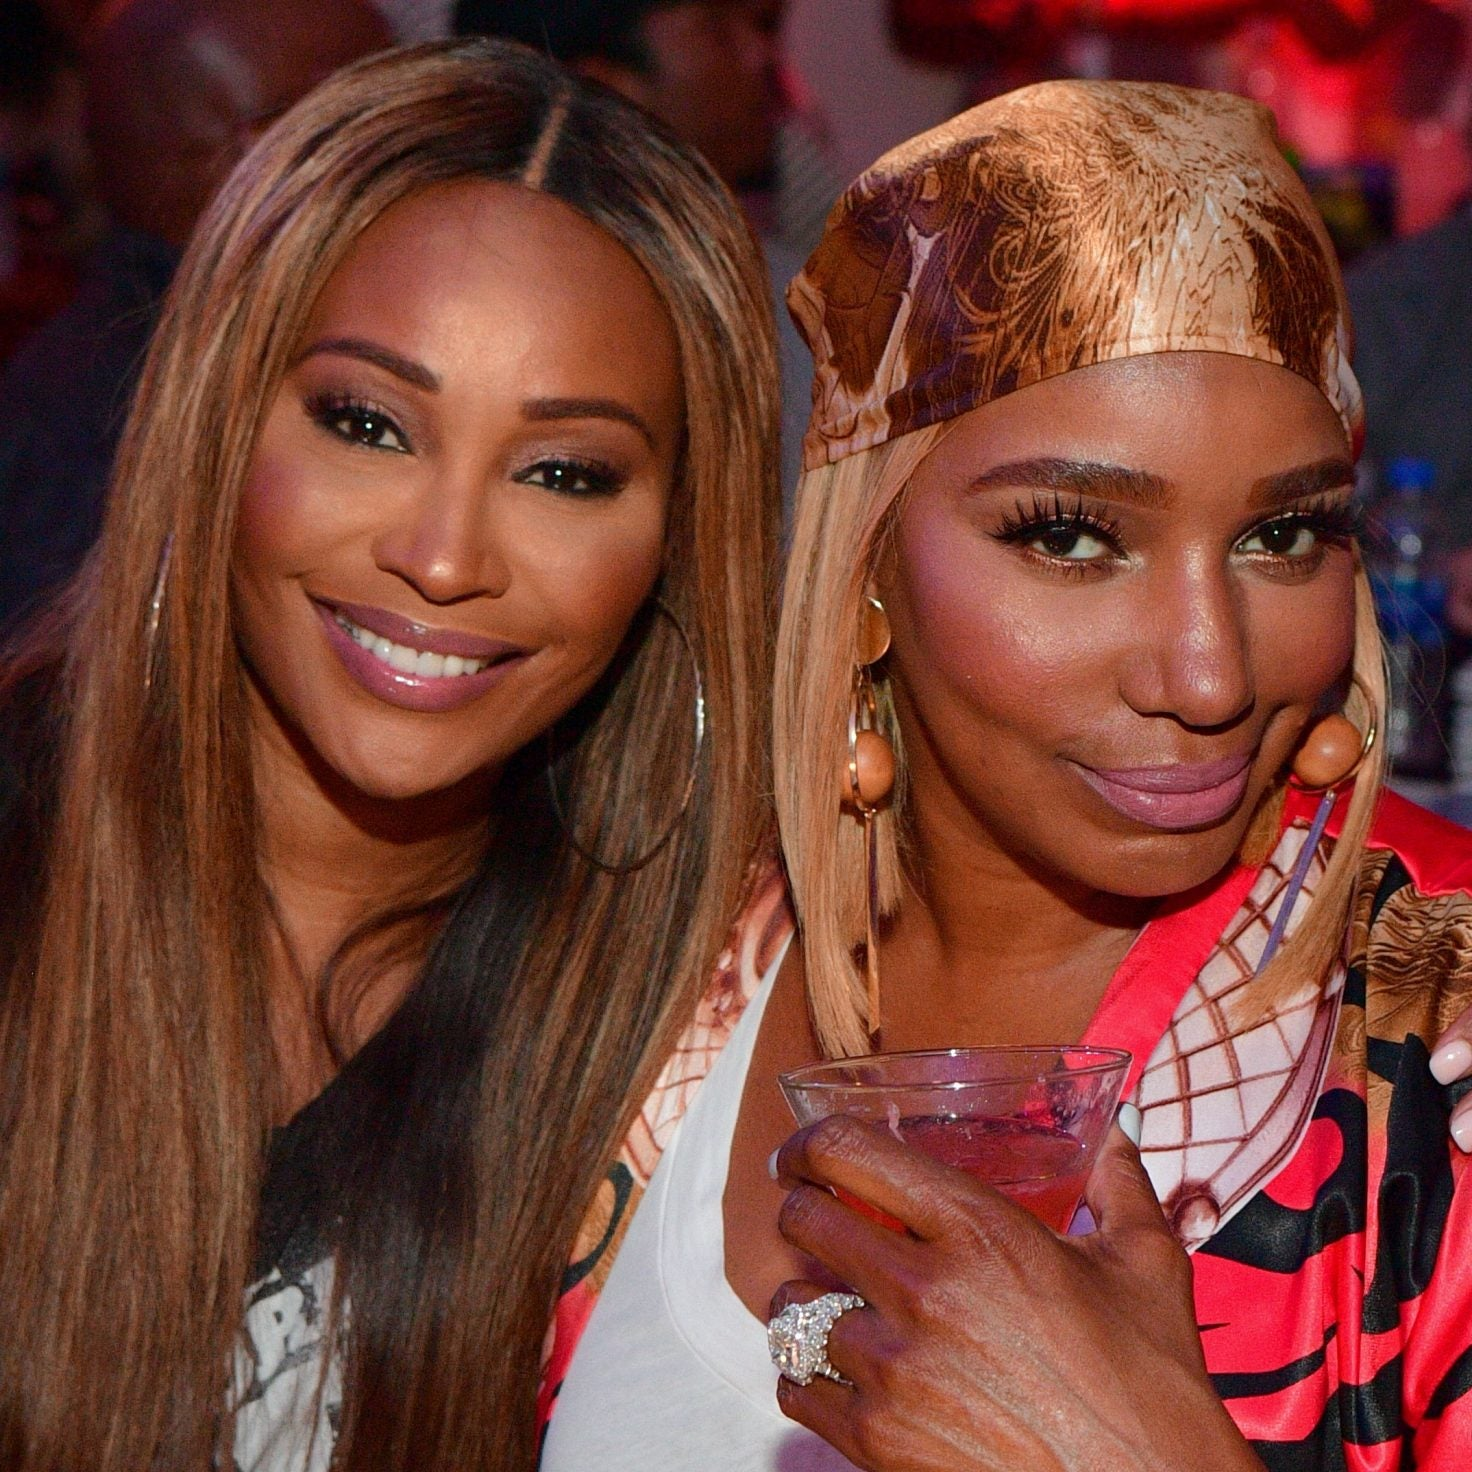 12 Photos That Make Us Miss Nene Leakes And Cynthia Bailey's Friendship